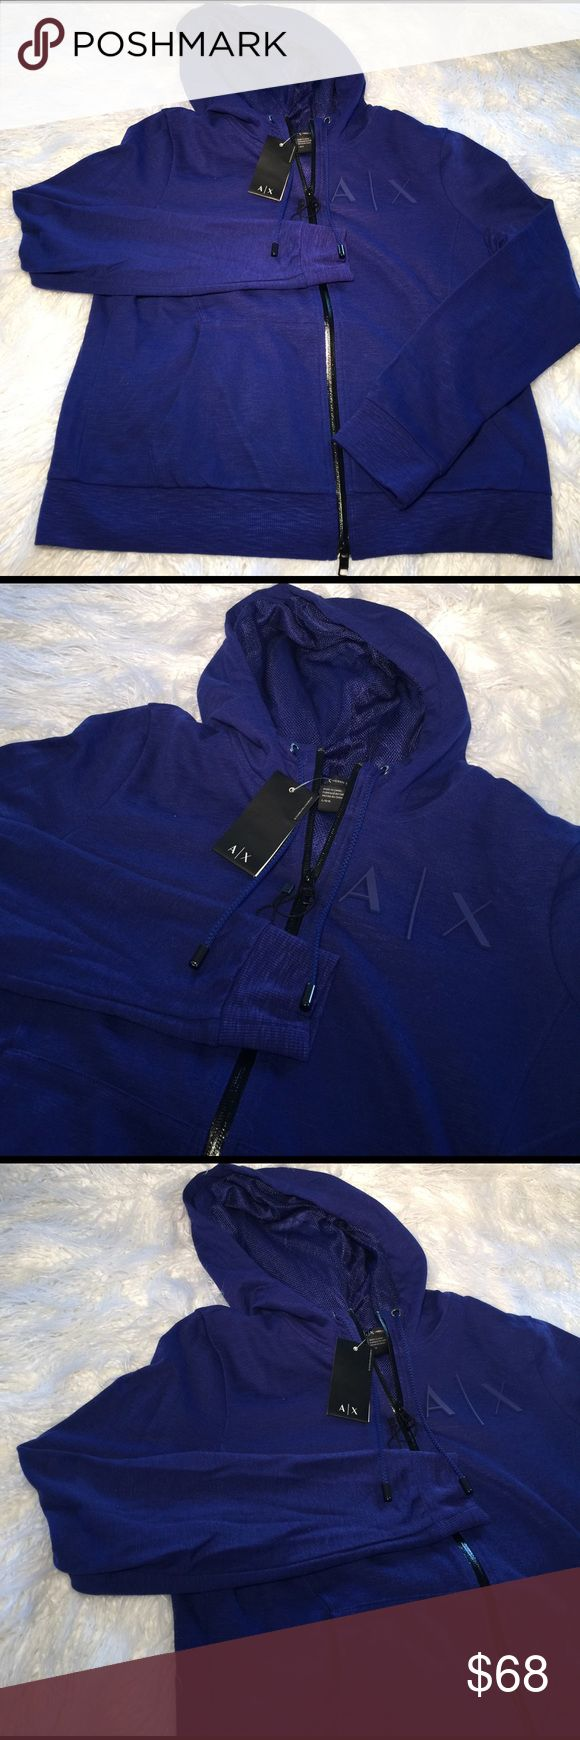 A/X ARMANI EXCHANGE Mesh Hoodie Zip Up A/X ARMANI EXCHANGE Mesh Hoodie Zip Up Women's A/X Armani Exchange Tops Sweatshirts & Hoodies